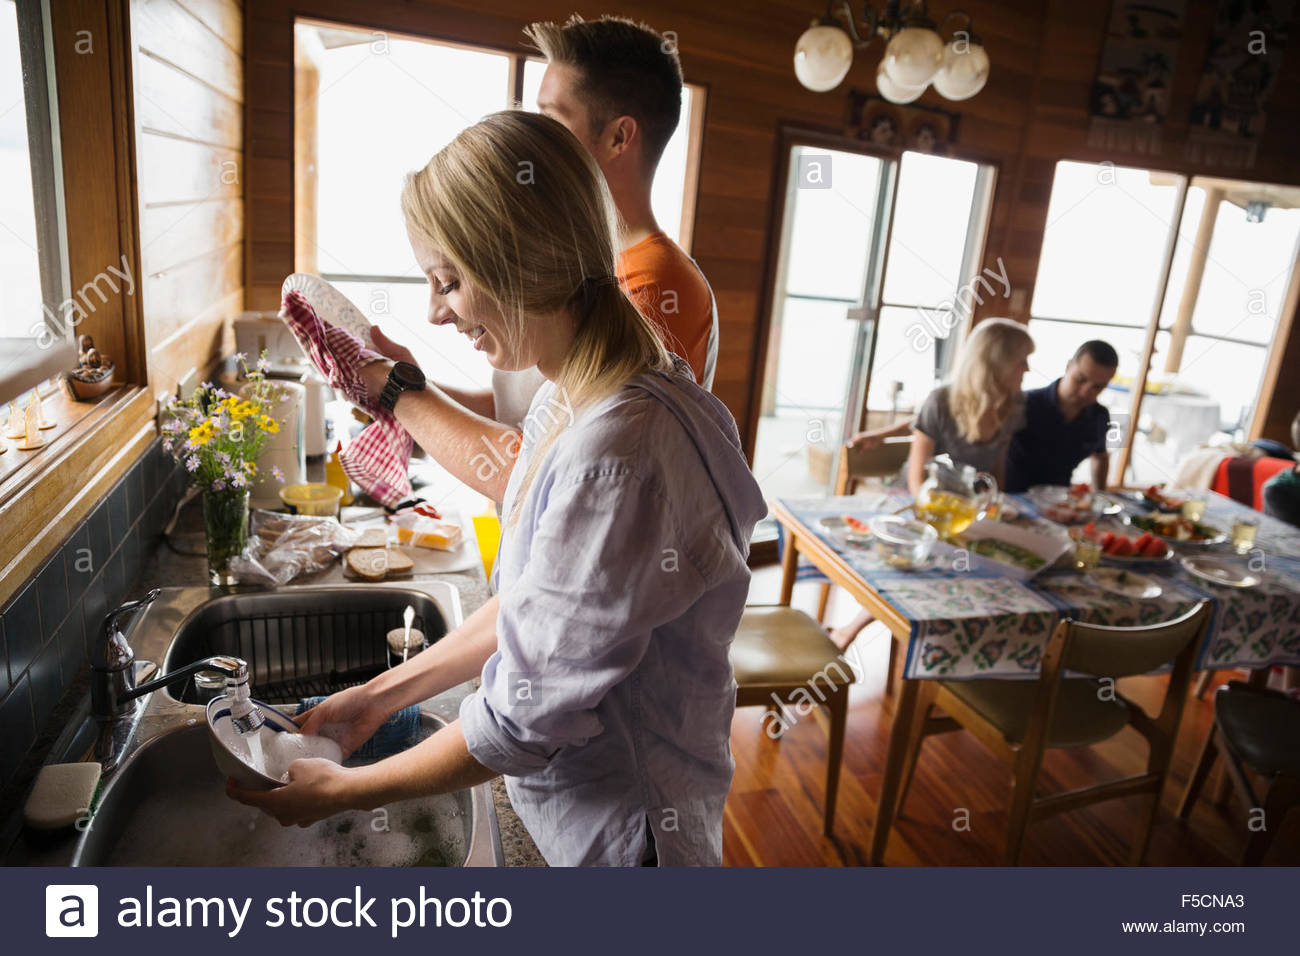 Couple washing dishes in cabin kitchen - Stock Image